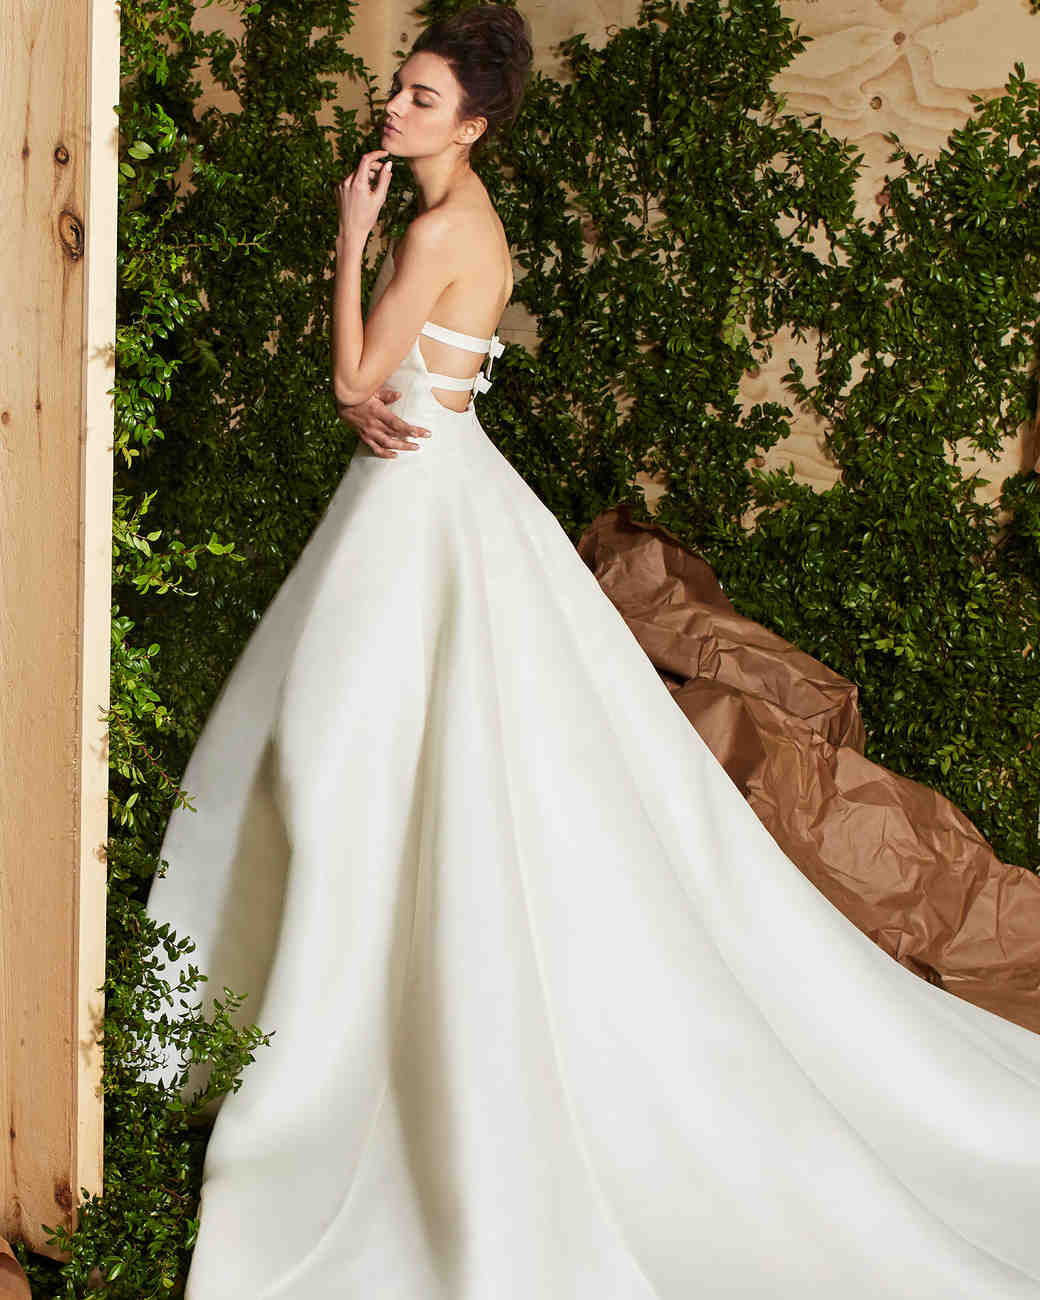 Marchesa Spring 2017 Wedding Dress Collection: Carolina Herrera Spring 2017 Wedding Dress Collection